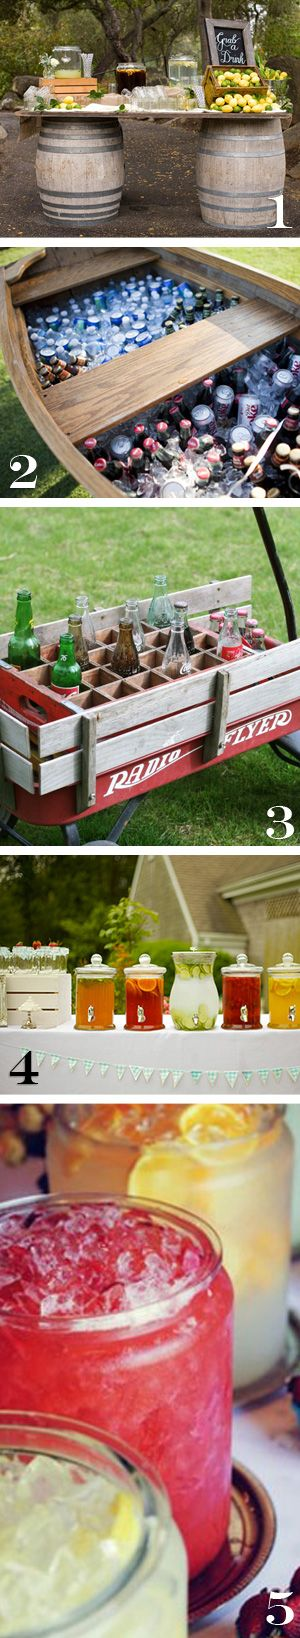 awesome ideas for outdoor drink displays for weddings, bbq, barbeque, picnics and parties.